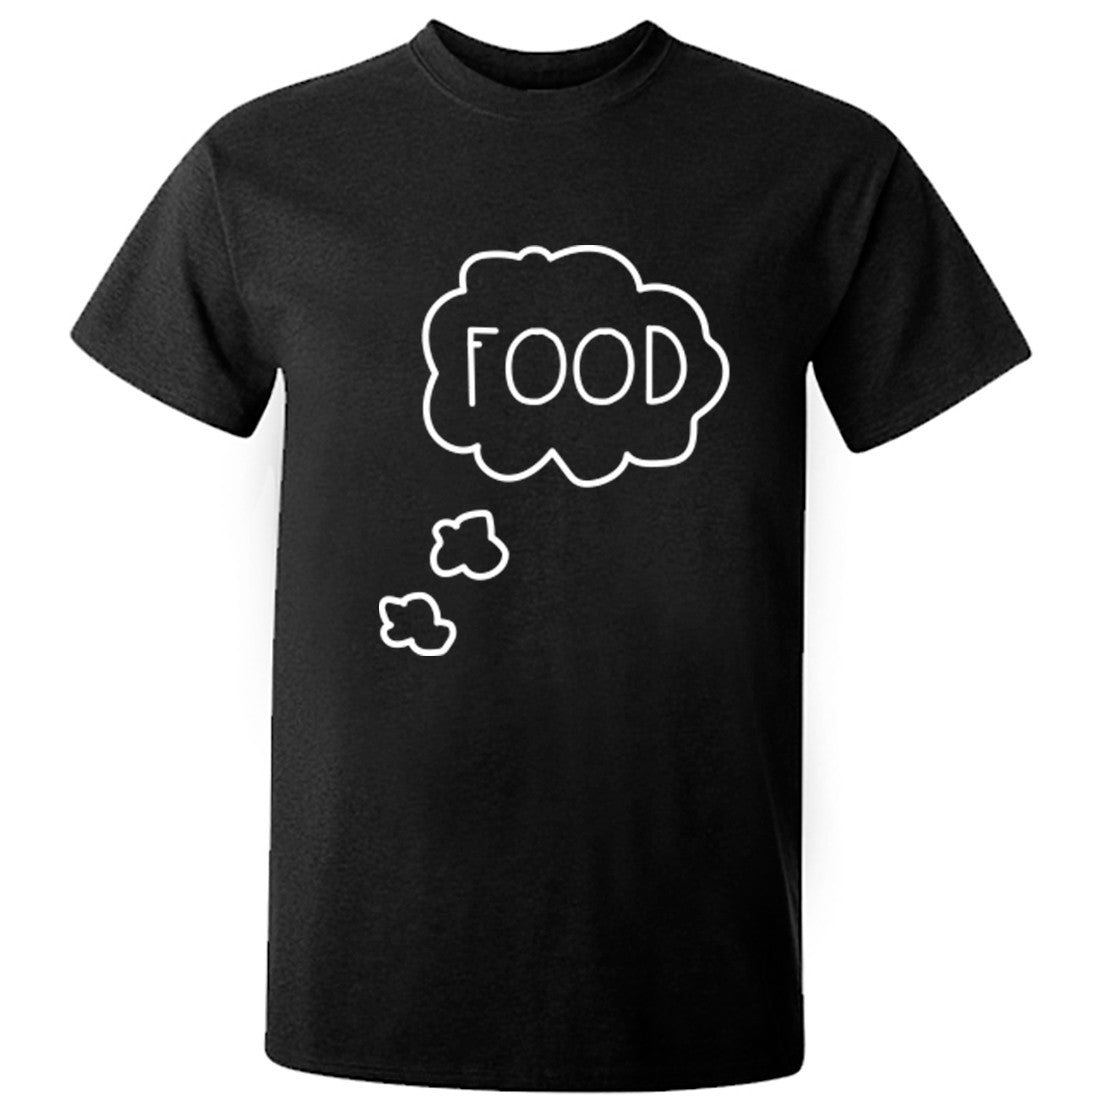 Thinking About Food Unisex Fit T-Shirt K0364 - Illustrated Identity Ltd.